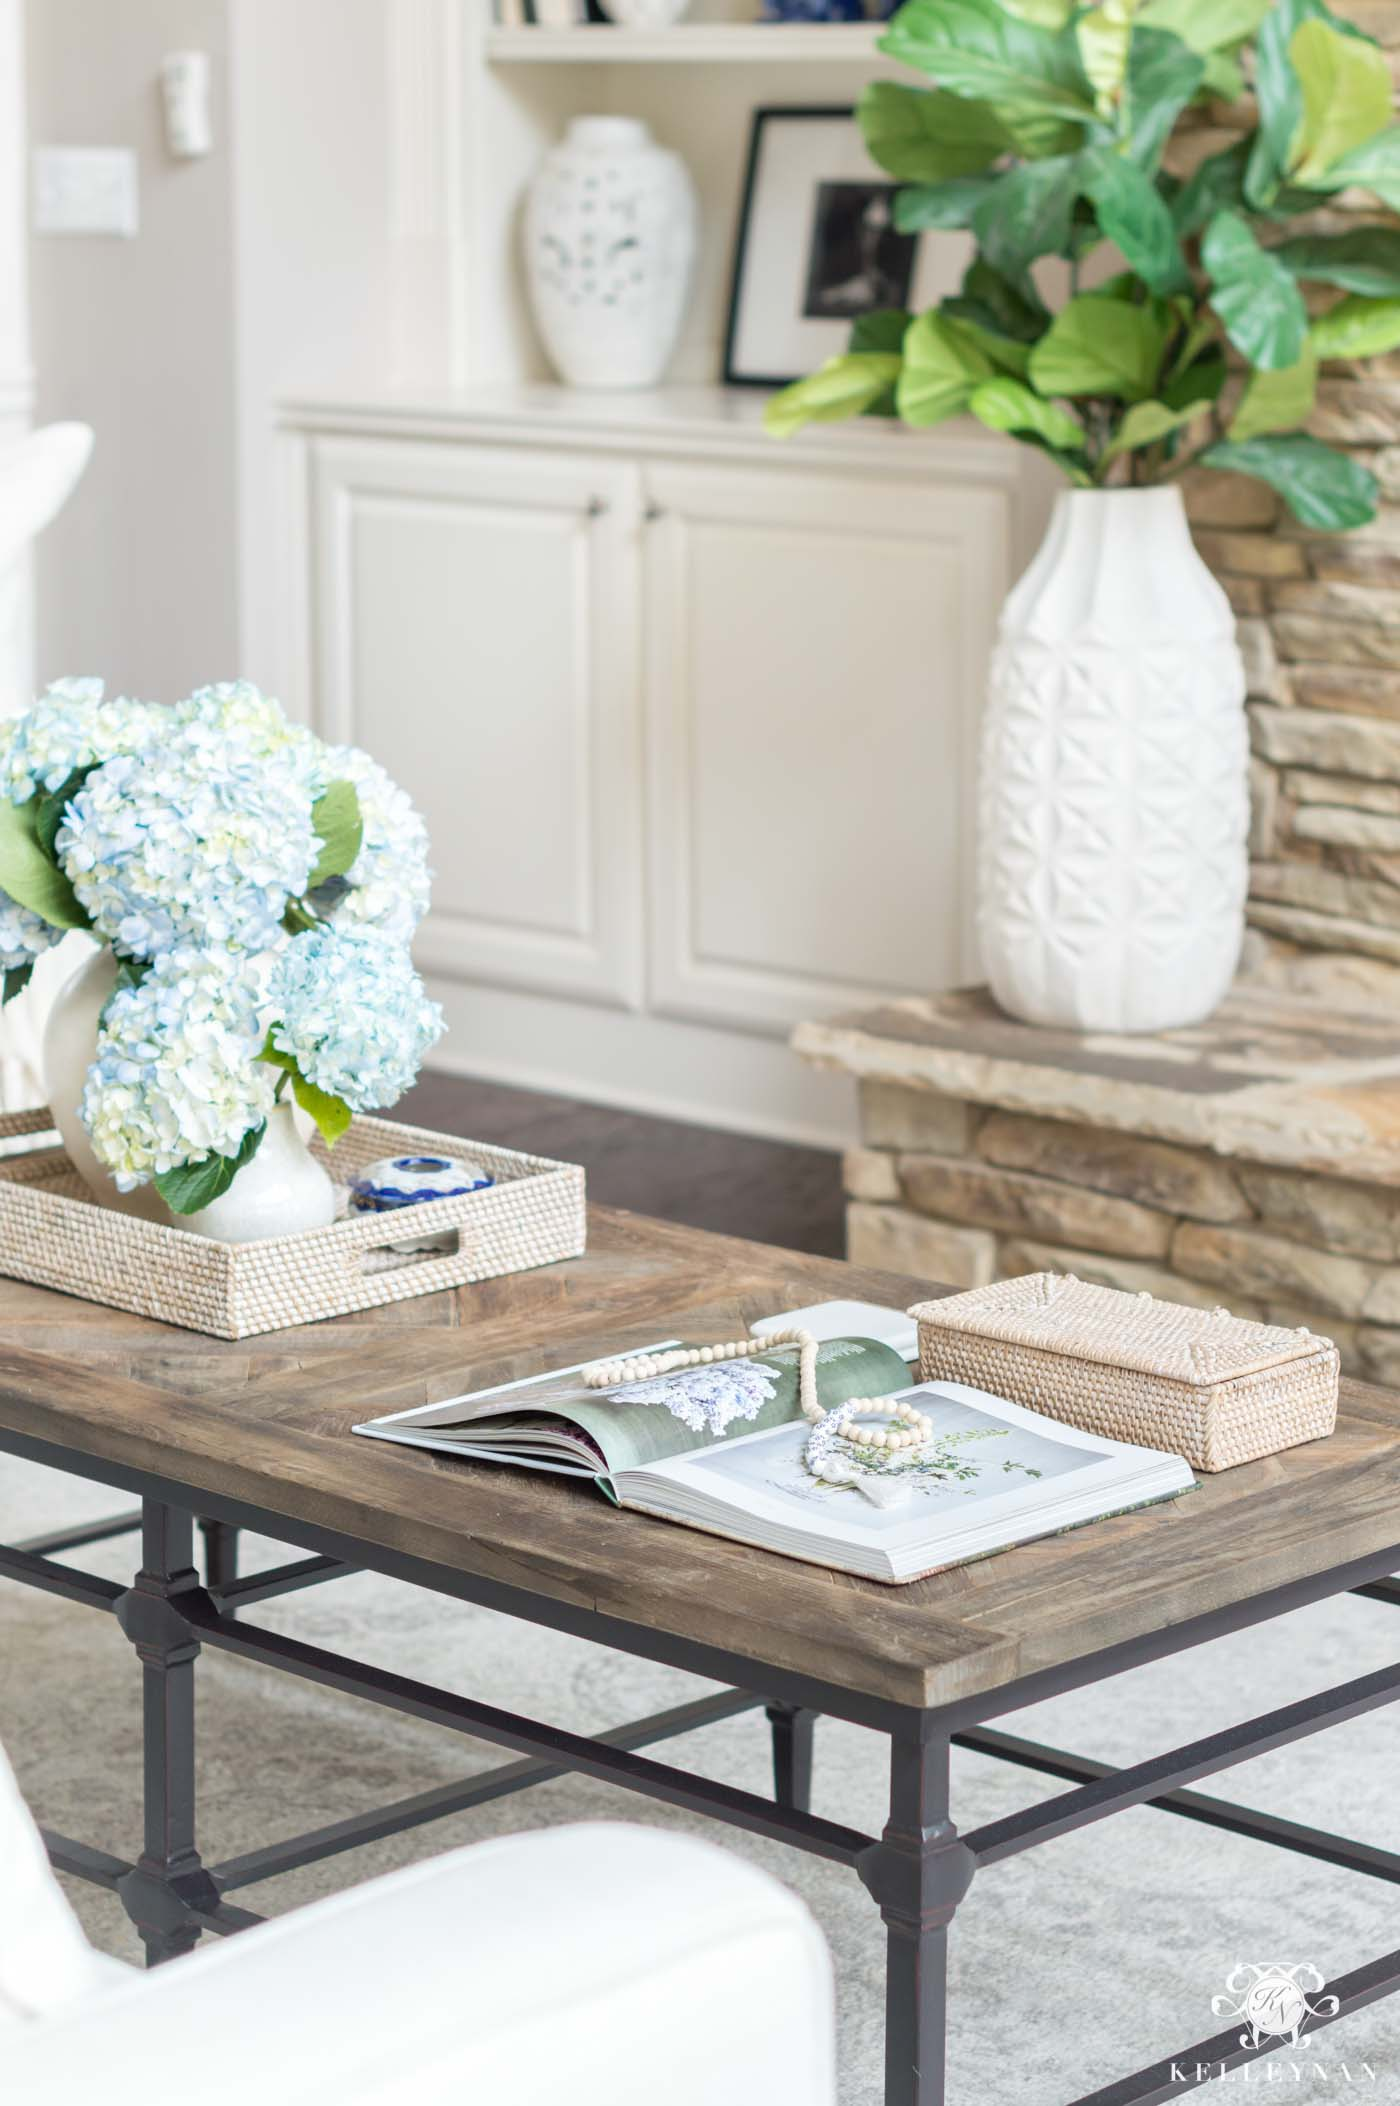 Coffee table styling and decor in the living room